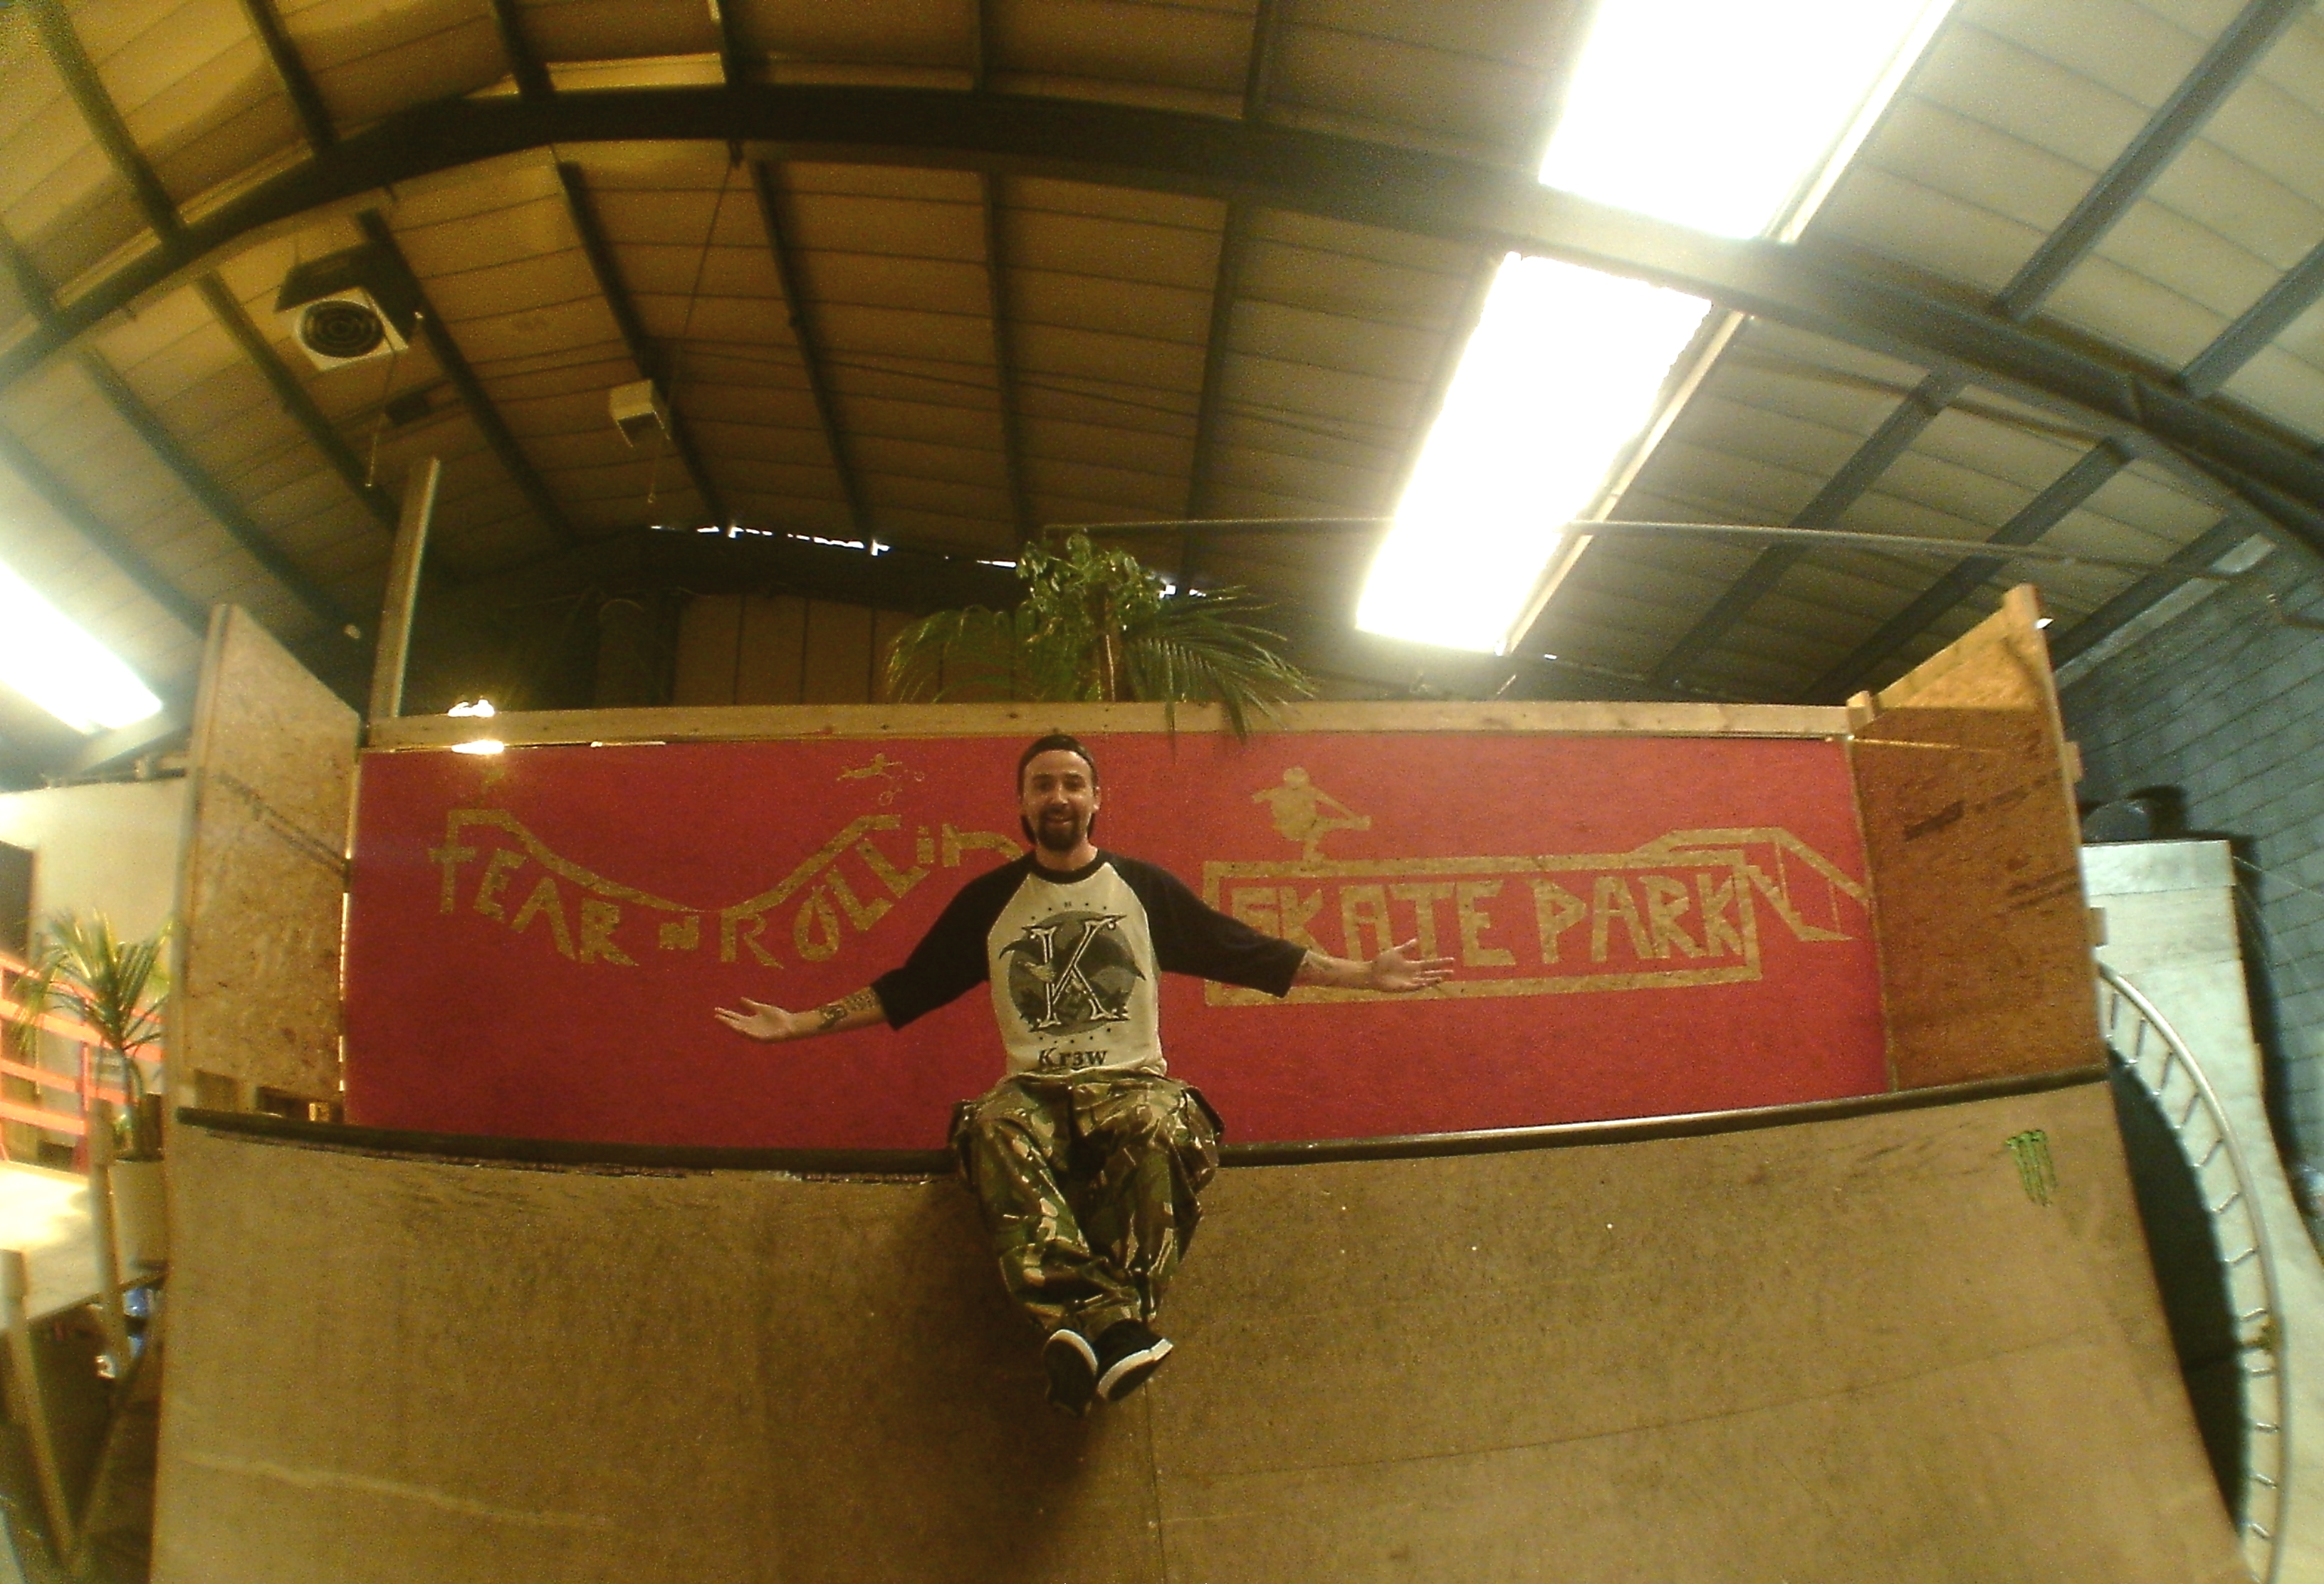 Rubicon skate camp